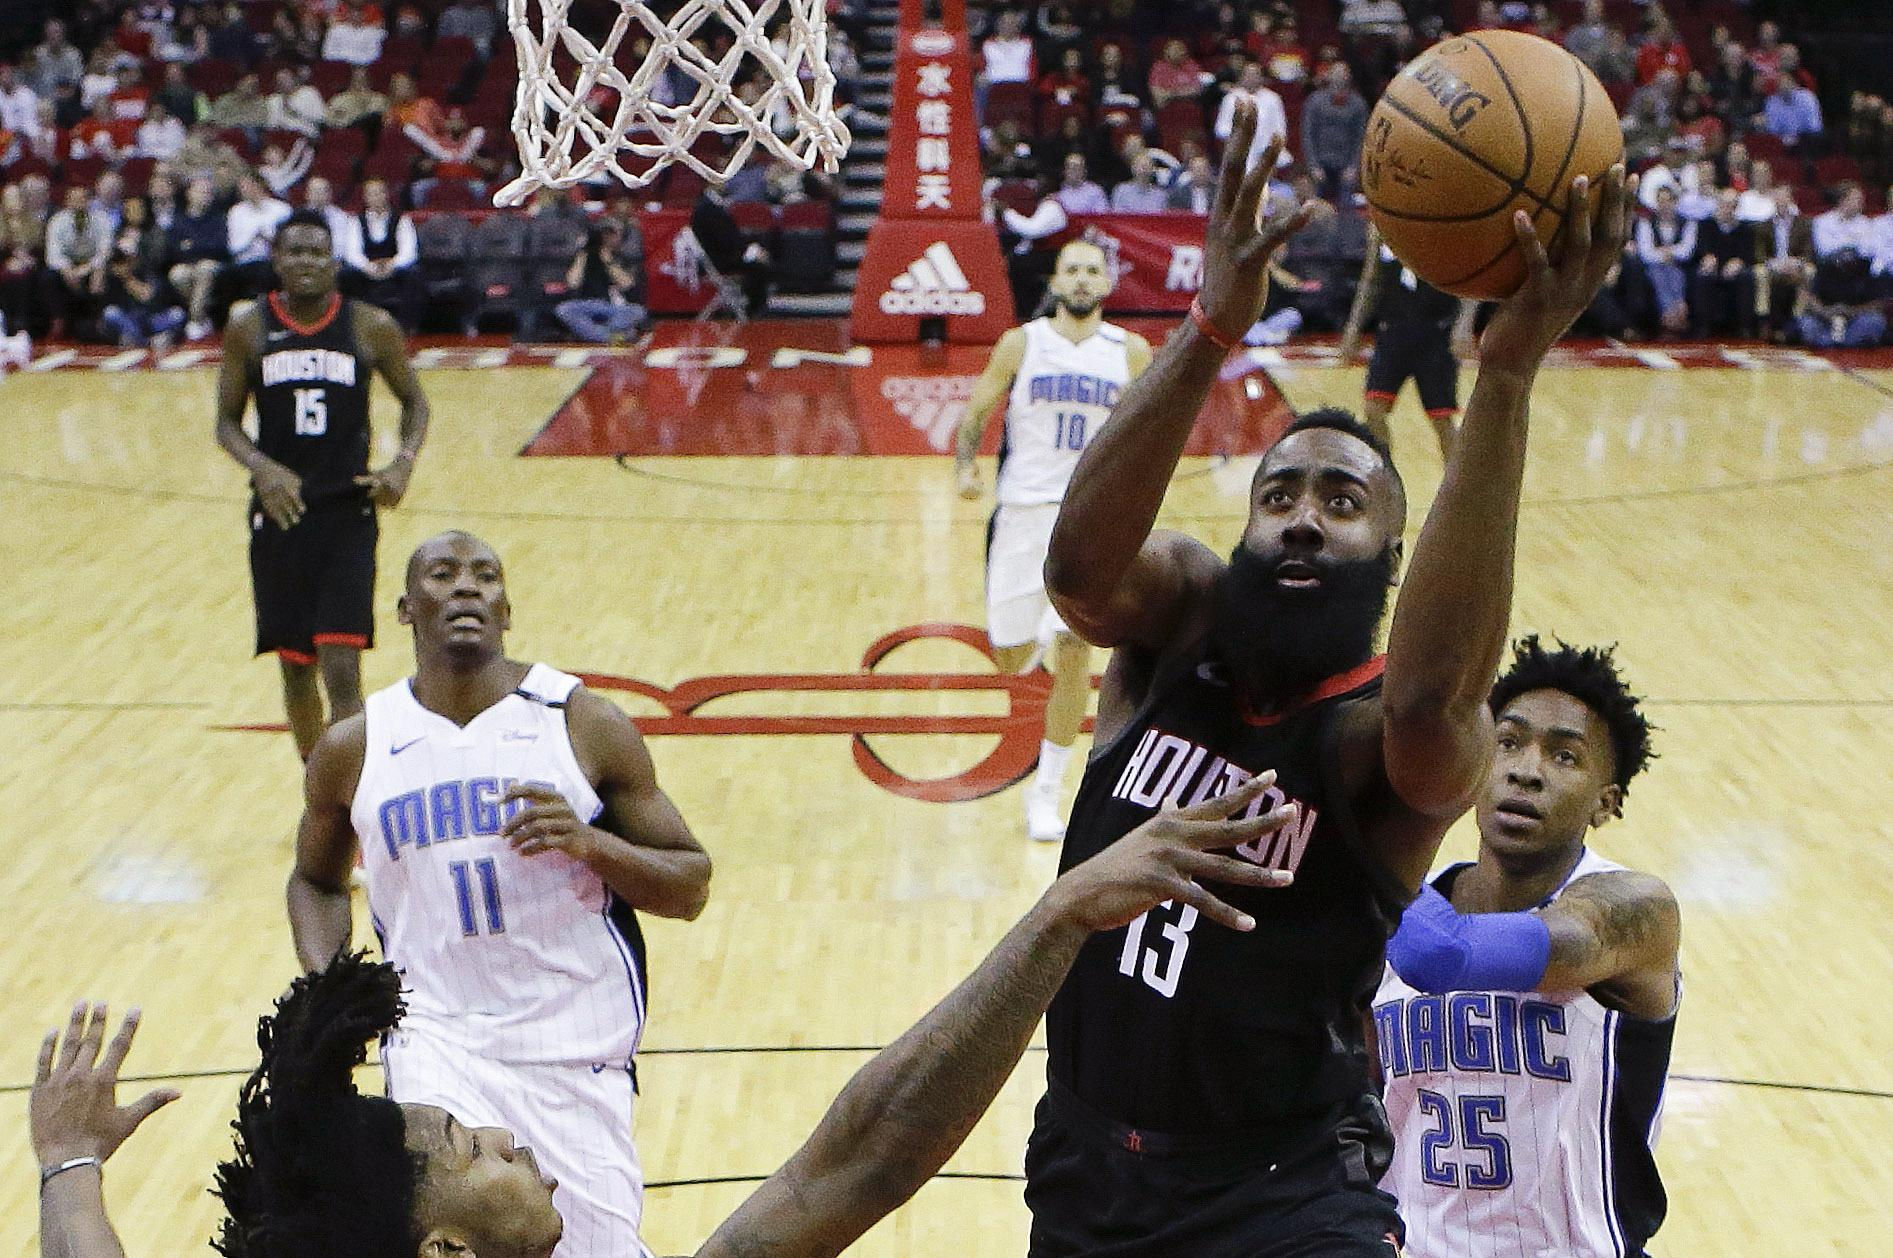 059e8f48f02c Houston Rockets guard James Harden drives to the basket as Orlando Magic  guard Elfrid Payton